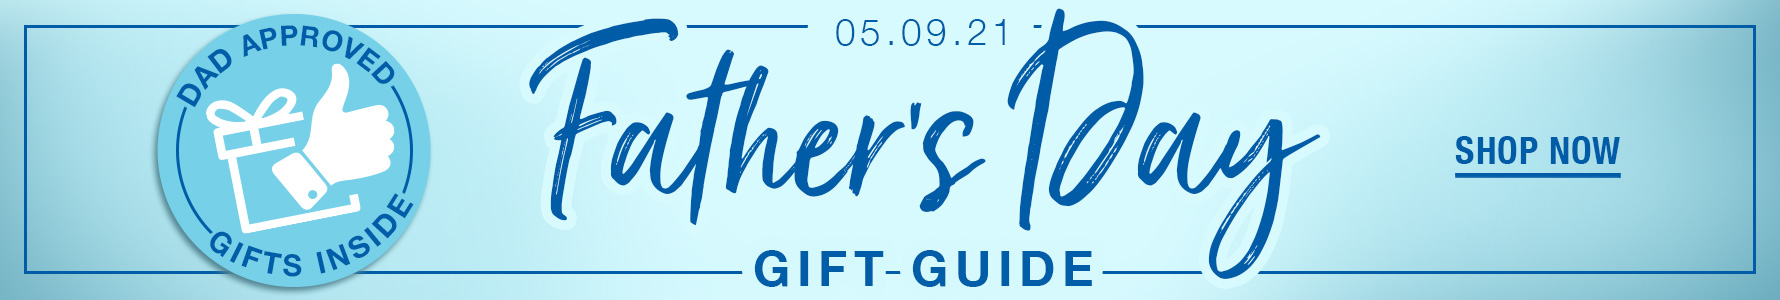 Rivers Father's Day Gift Guide